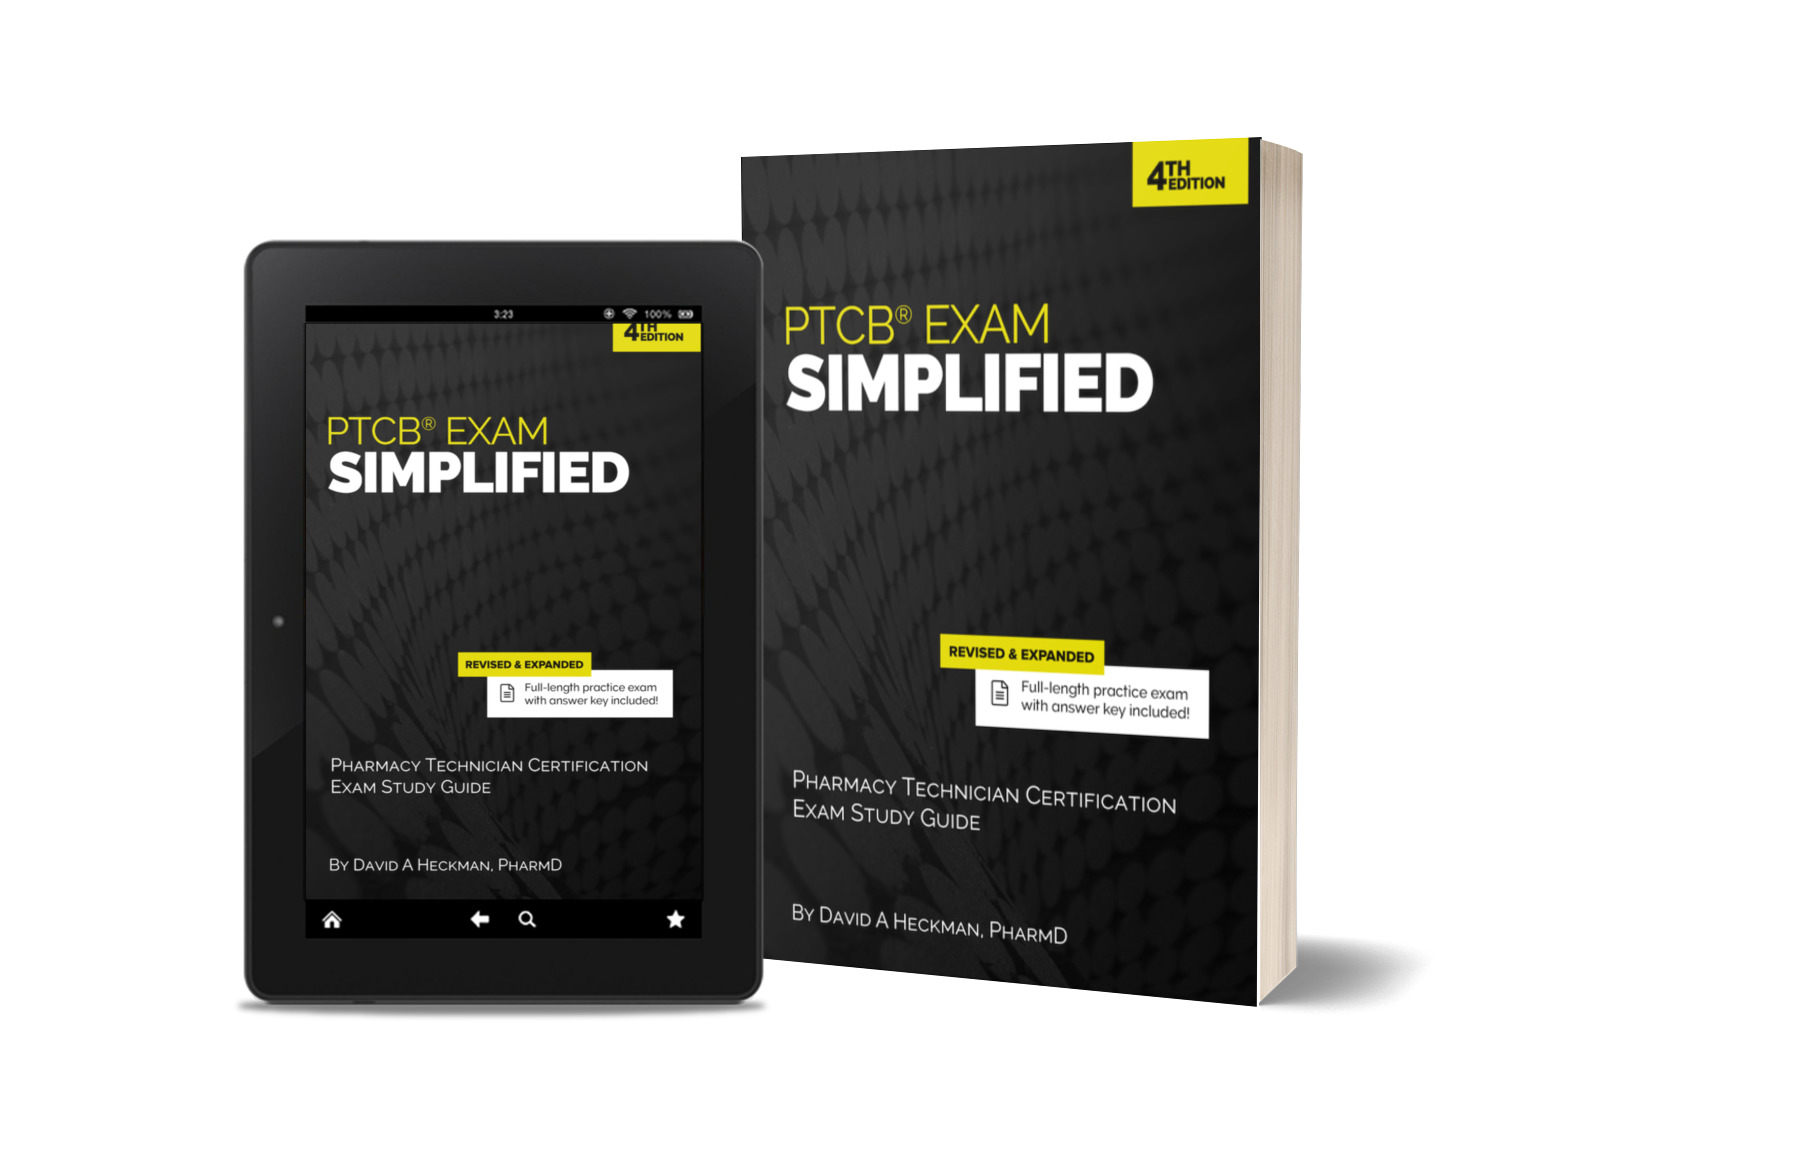 PTCB Exam Simplified (4th Edition)